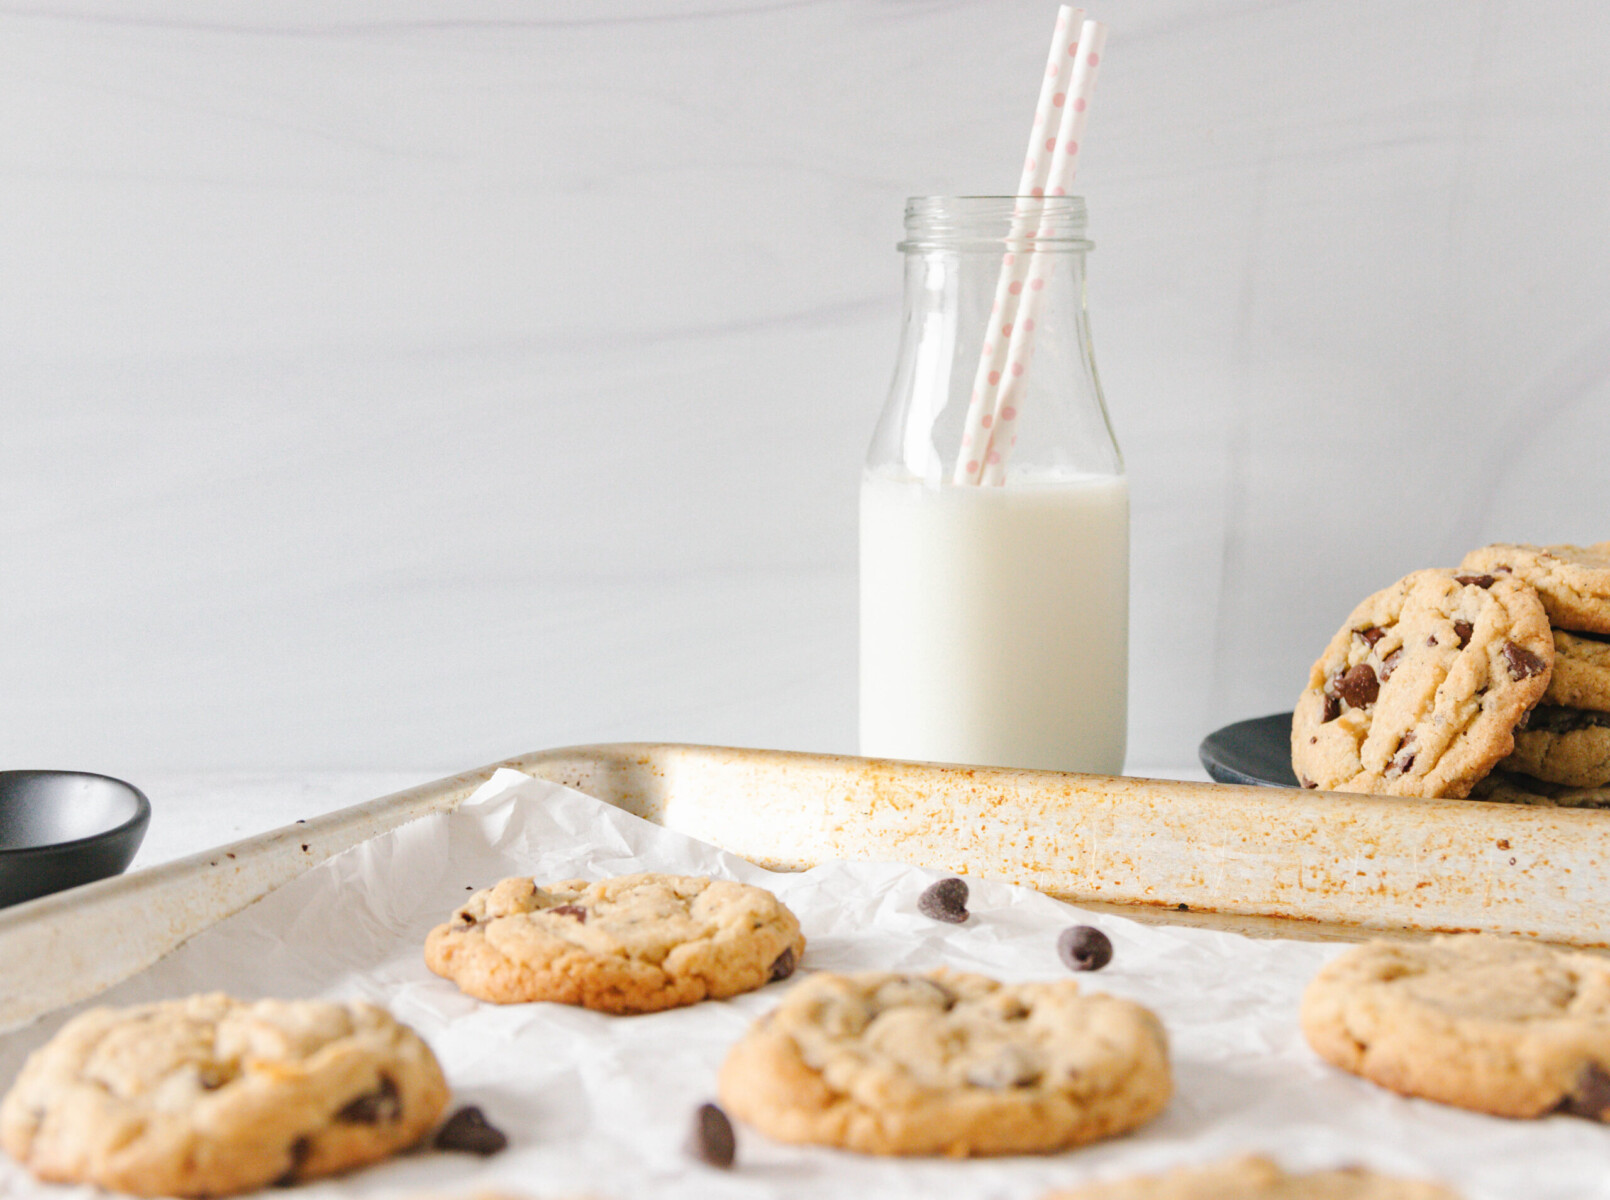 horizontal image of the bake chocolate chip cookies on a baking sheet